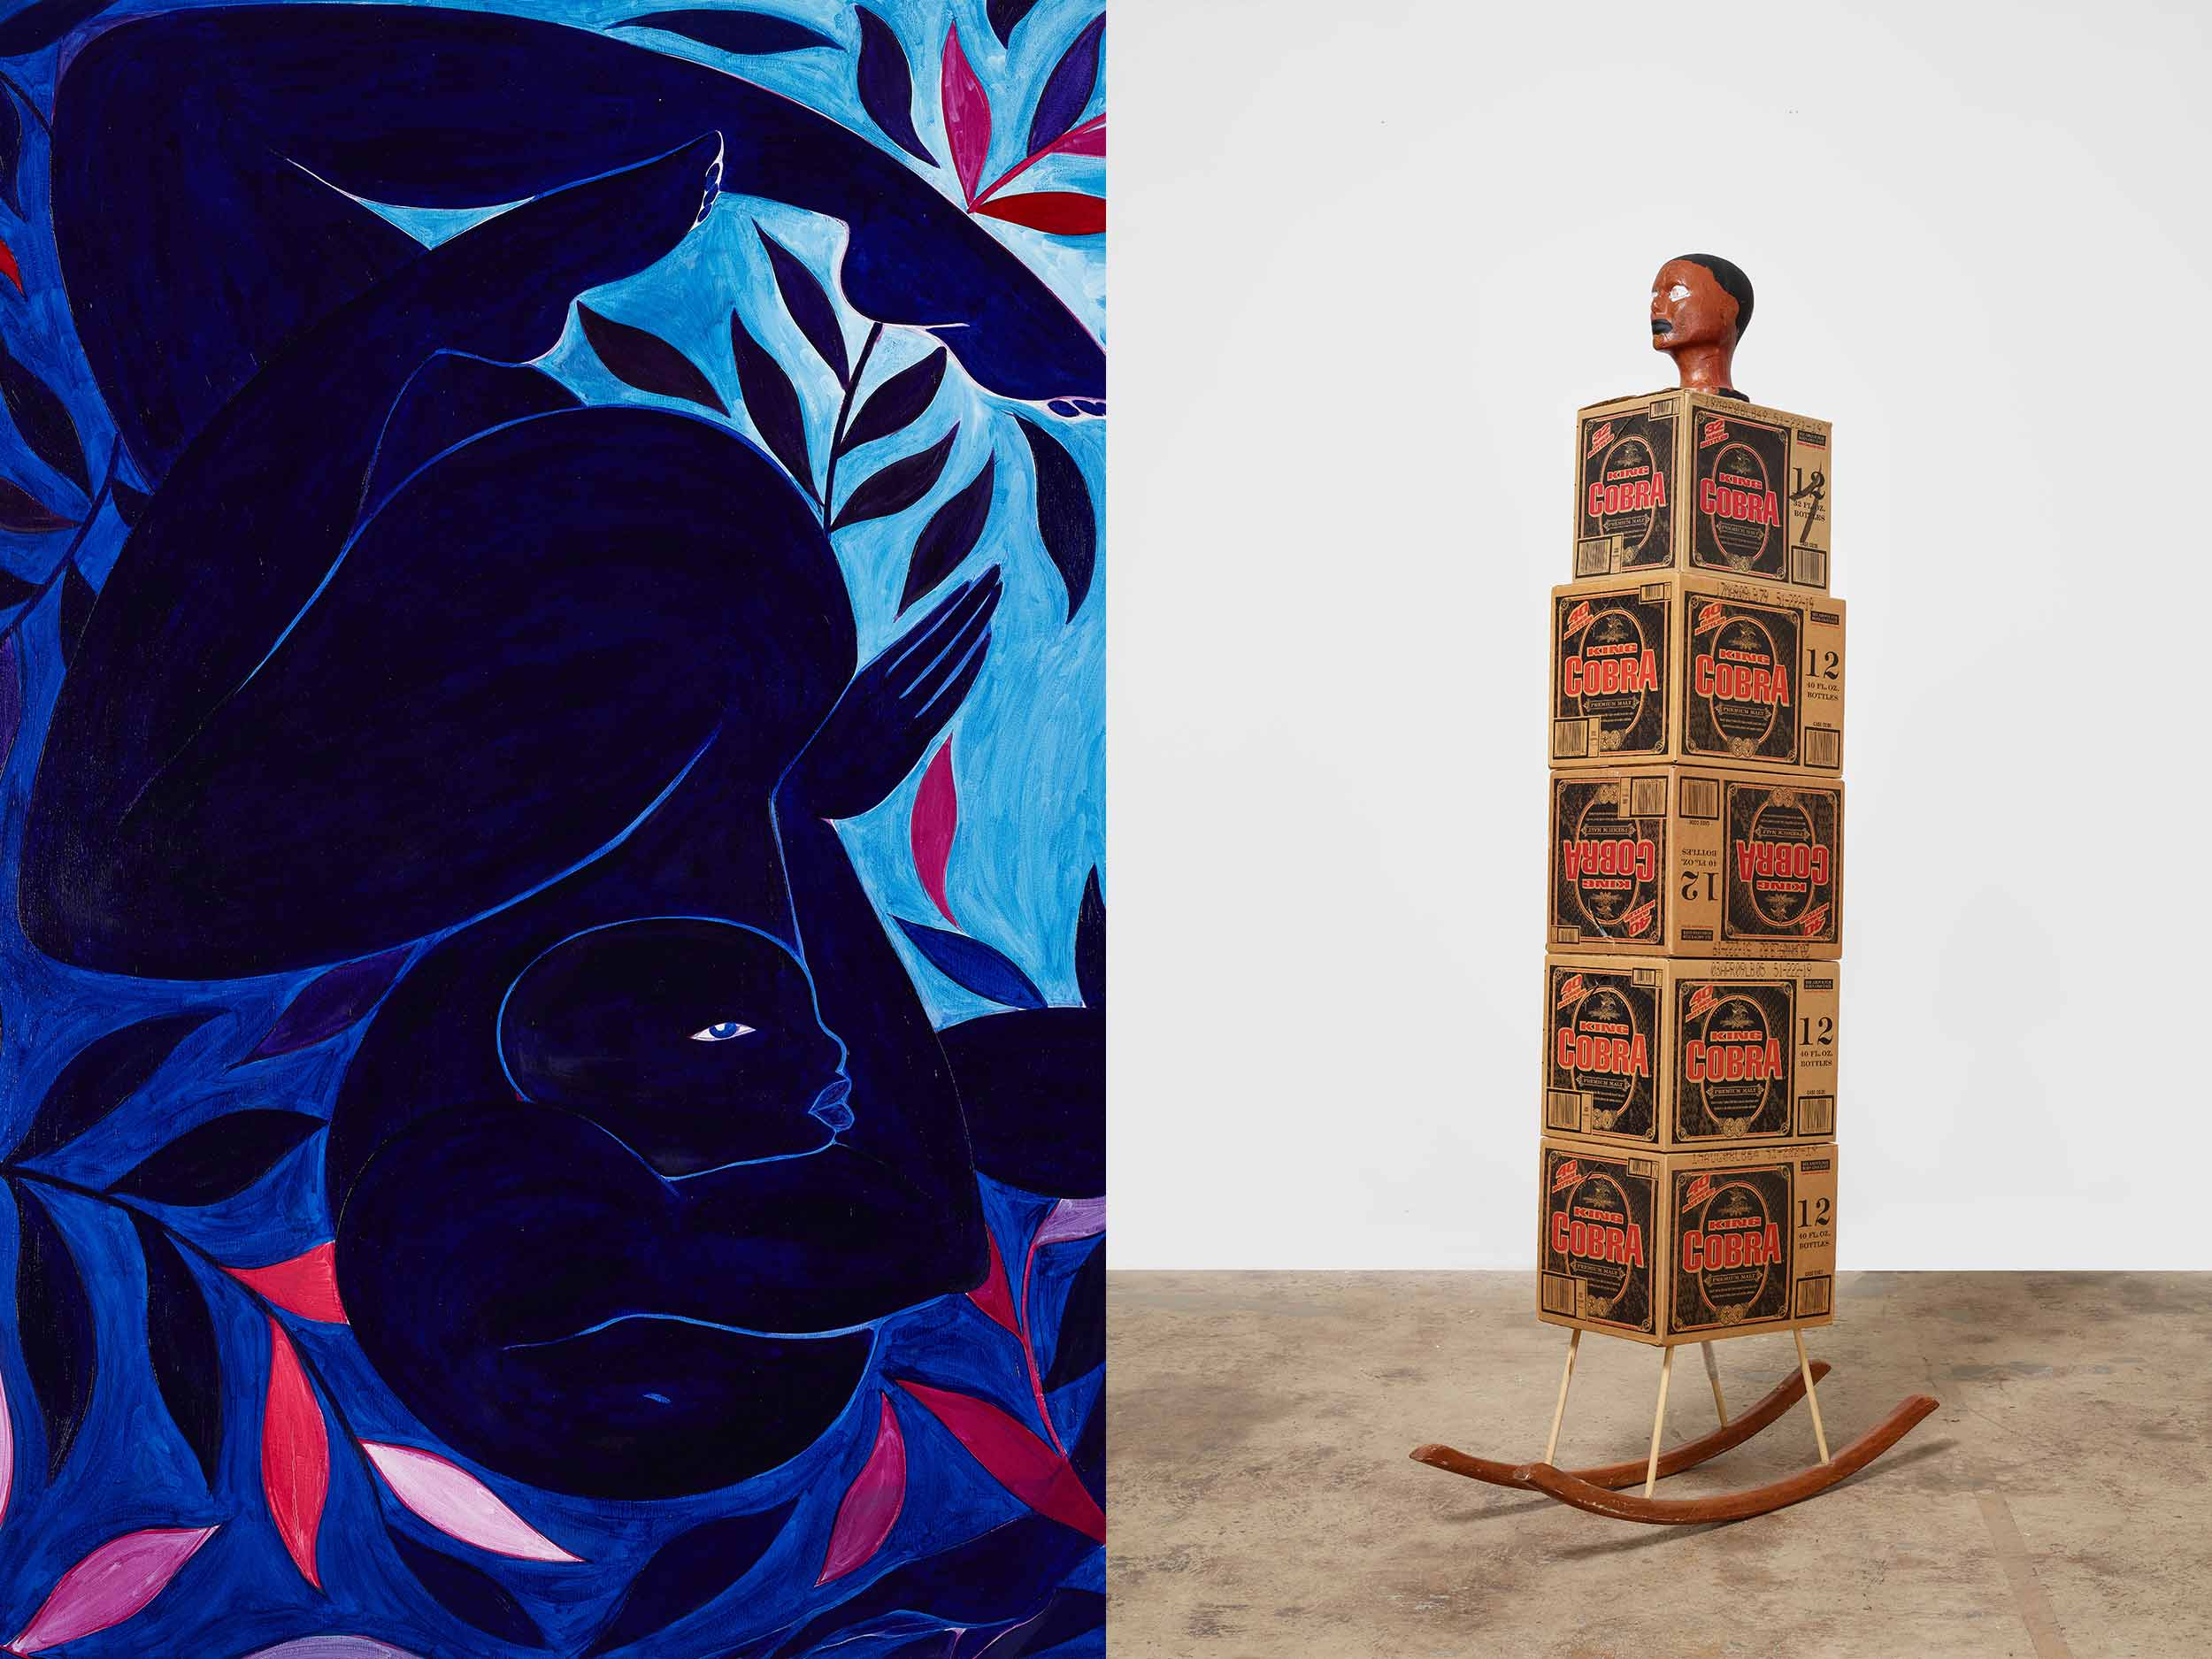 'Young, Gifted and Black' spotlights the multitude of black artists defining the contemporary art scene